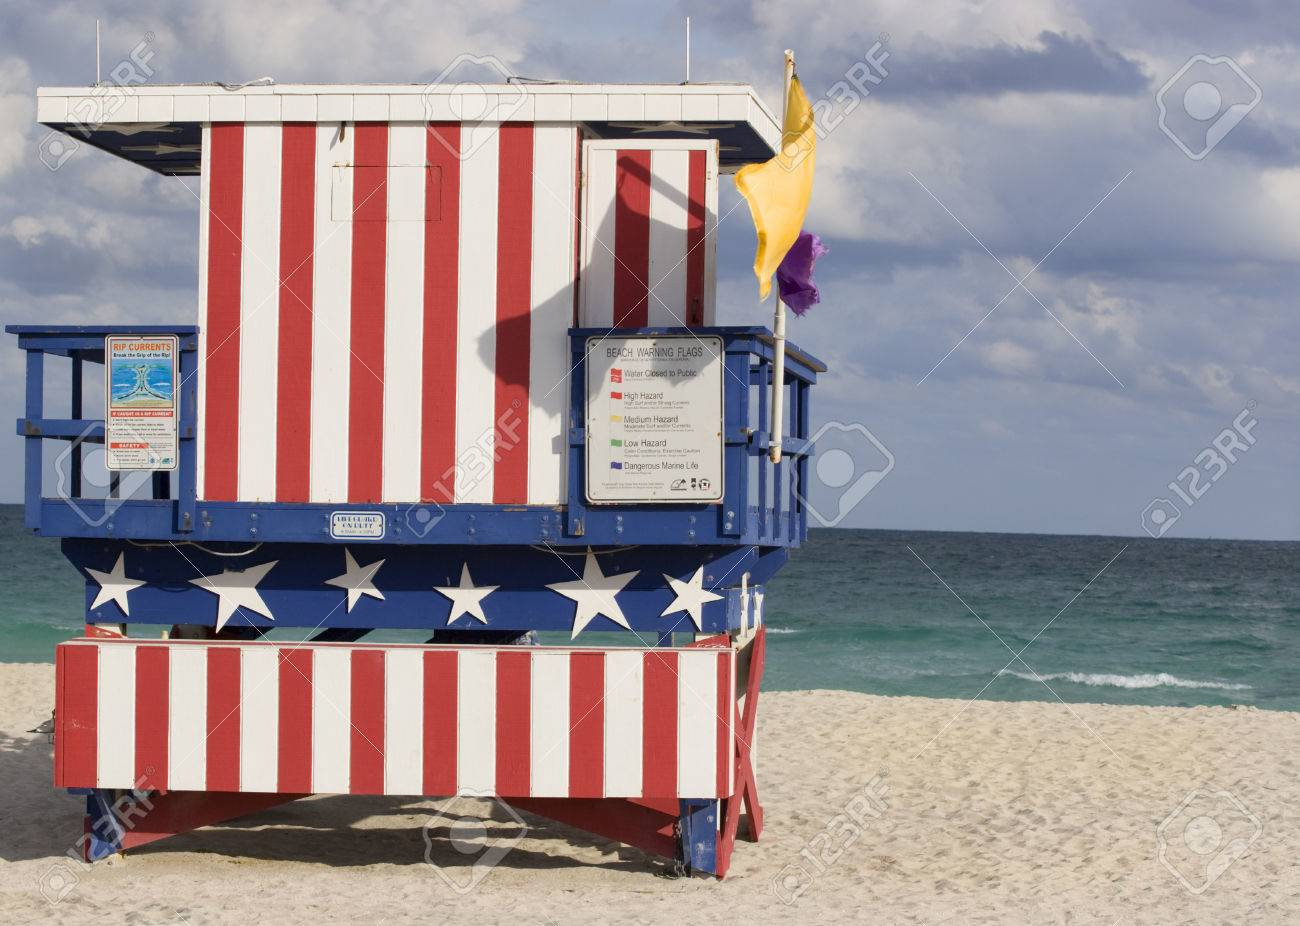 Famous lifesaver hut with the colors of the American flag Miami